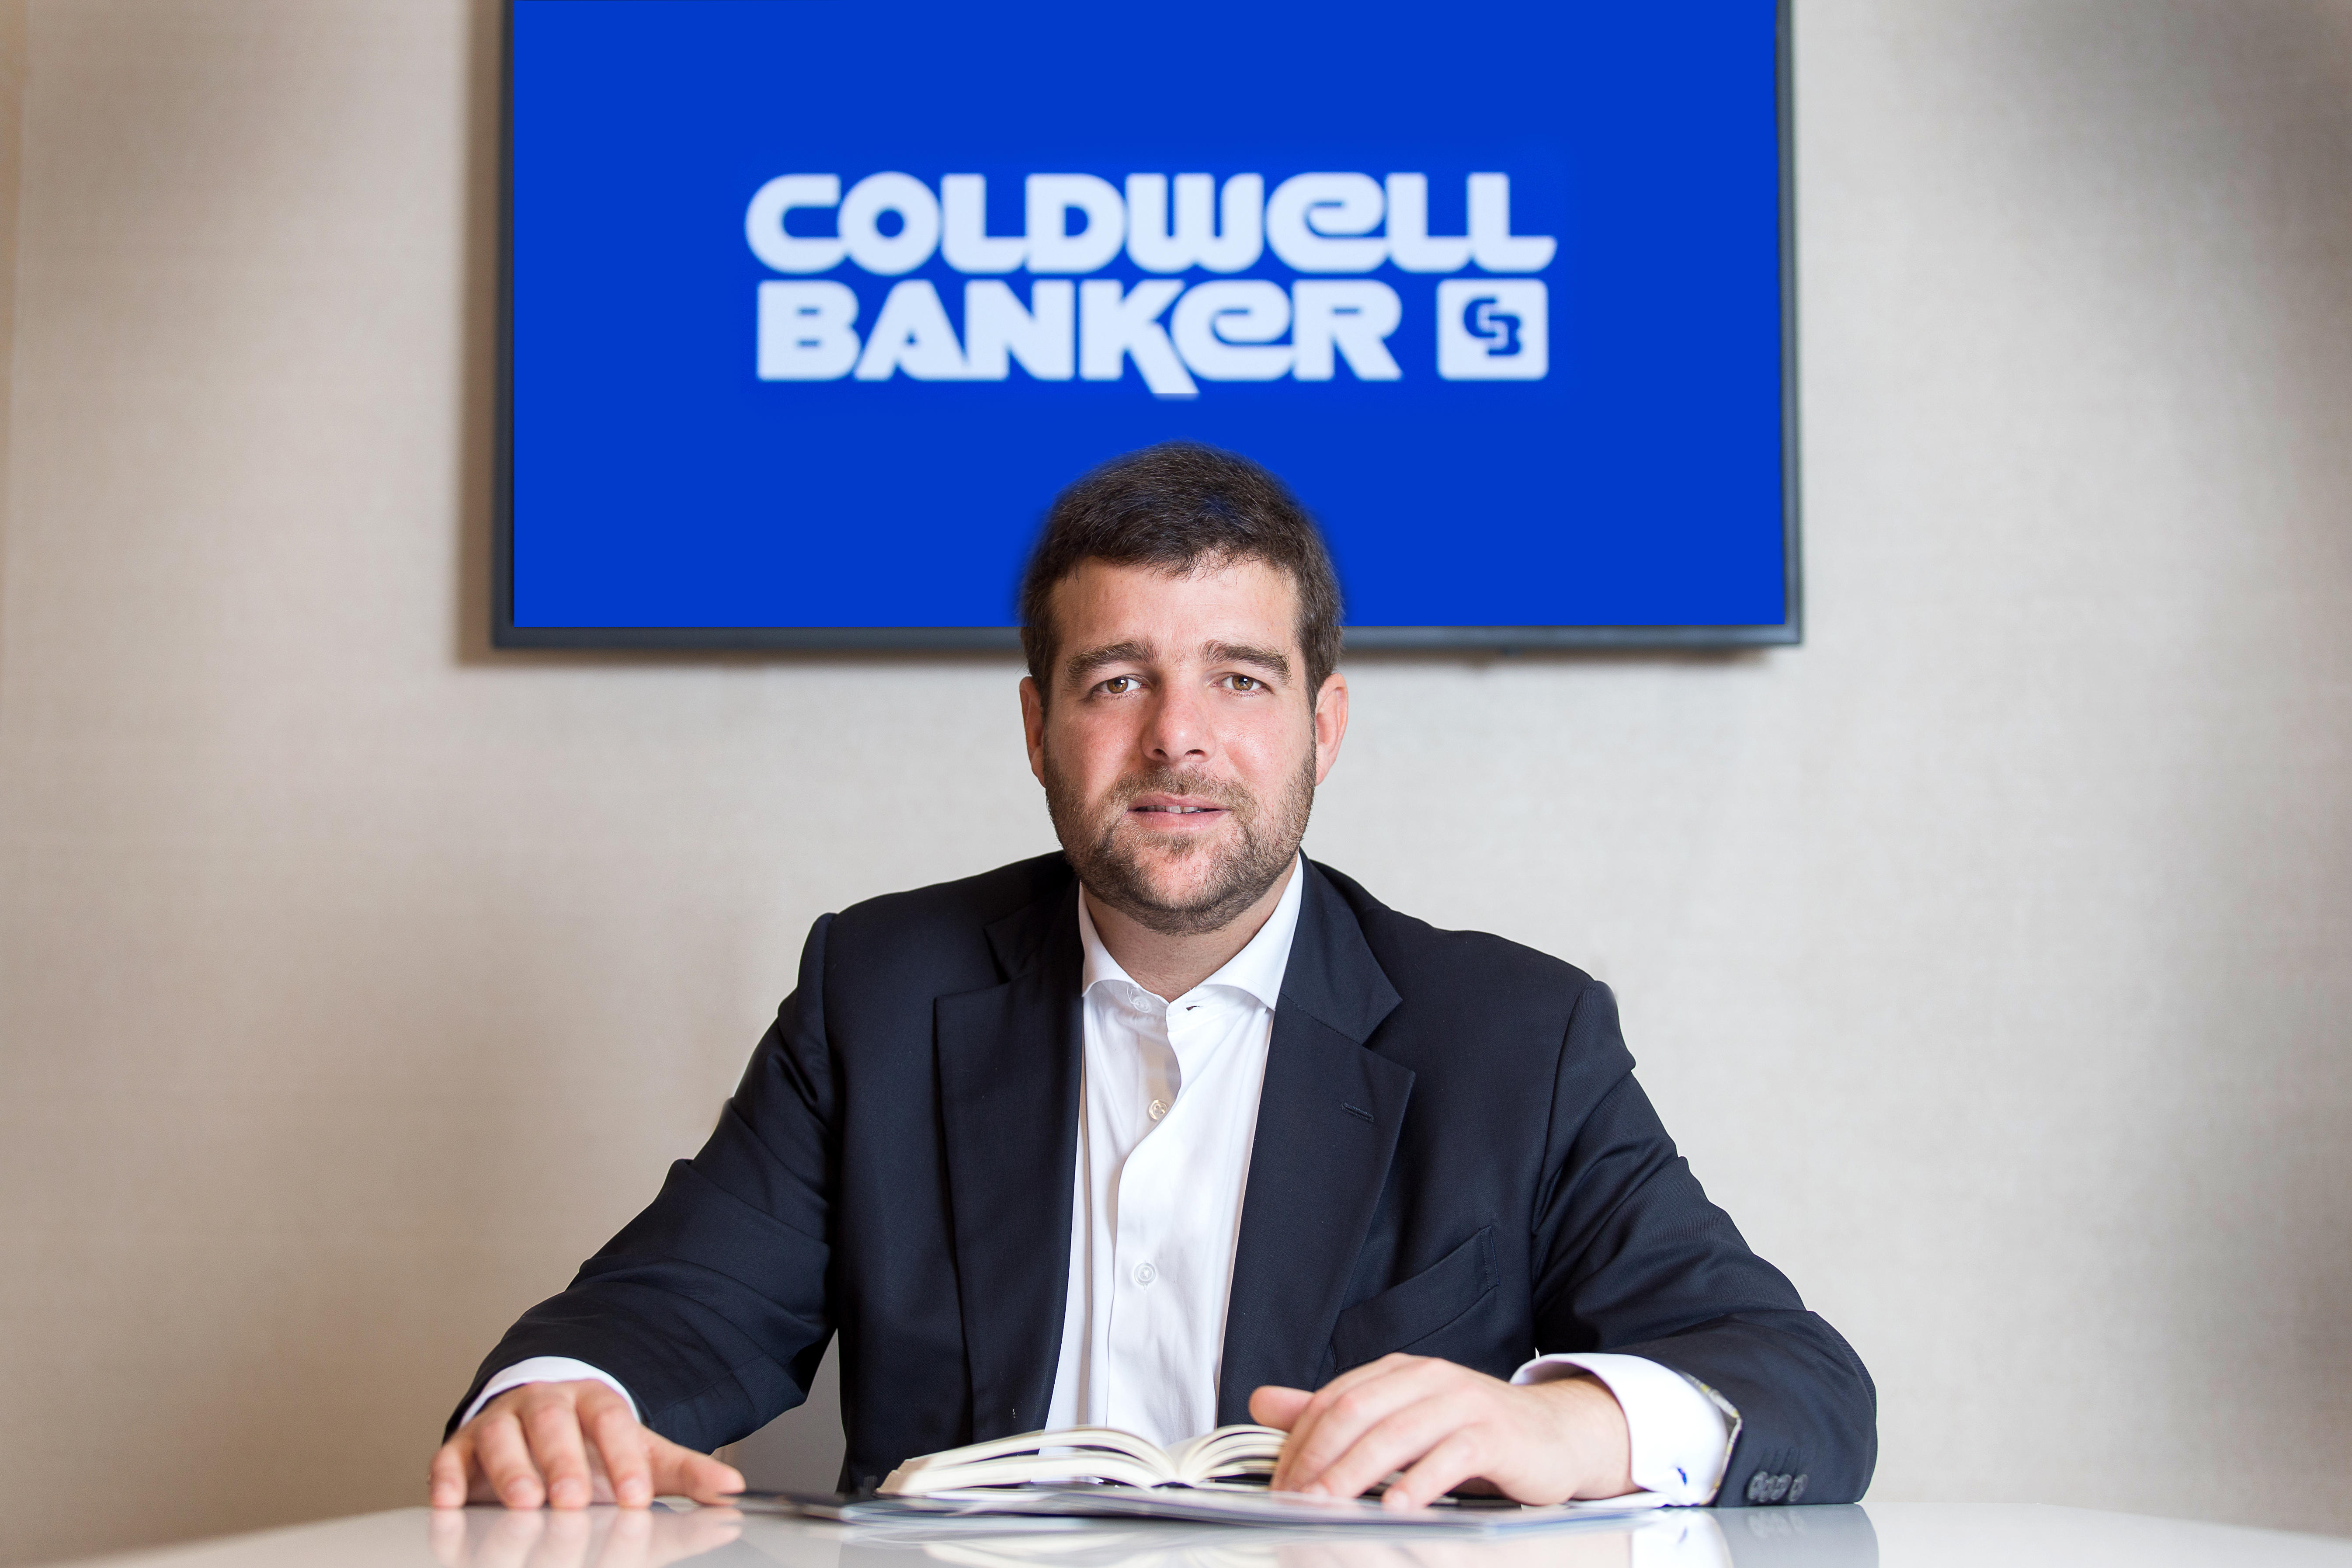 Frederico Abecassis, CEO da Coldwell Banker Portugal / Coldwell Banker